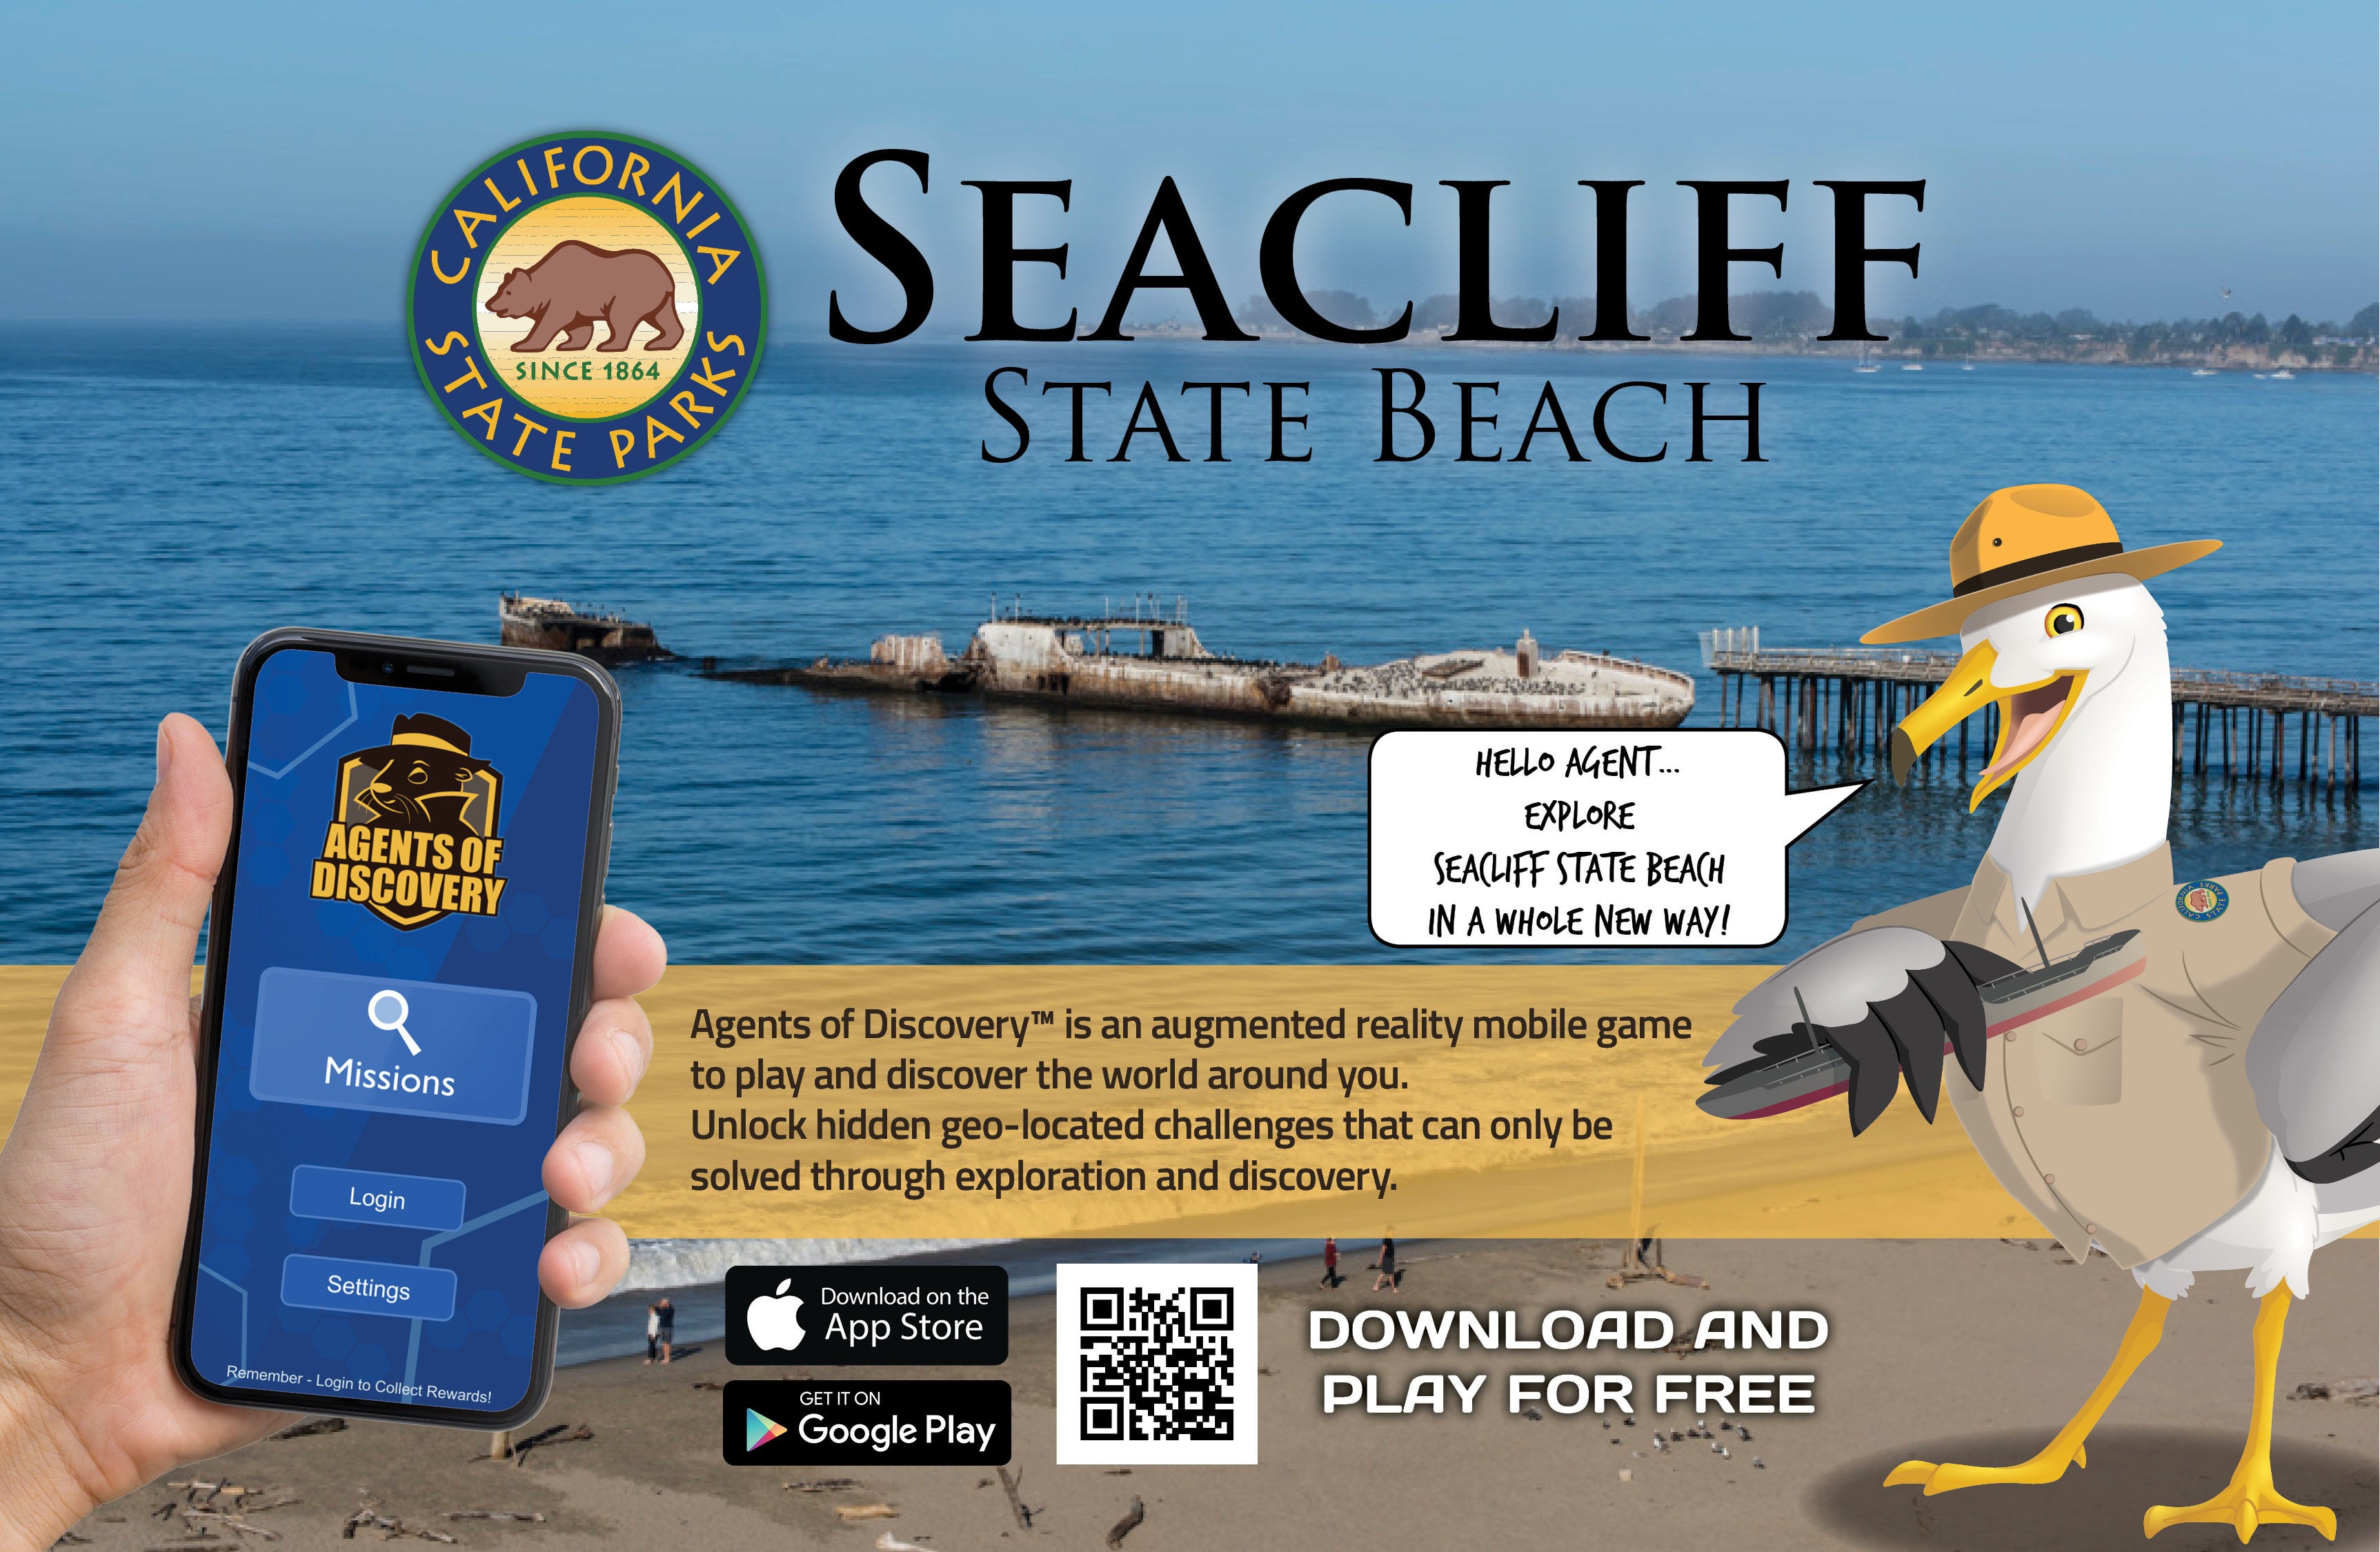 Agents of Discovery Mission Now Available at Seacliff!